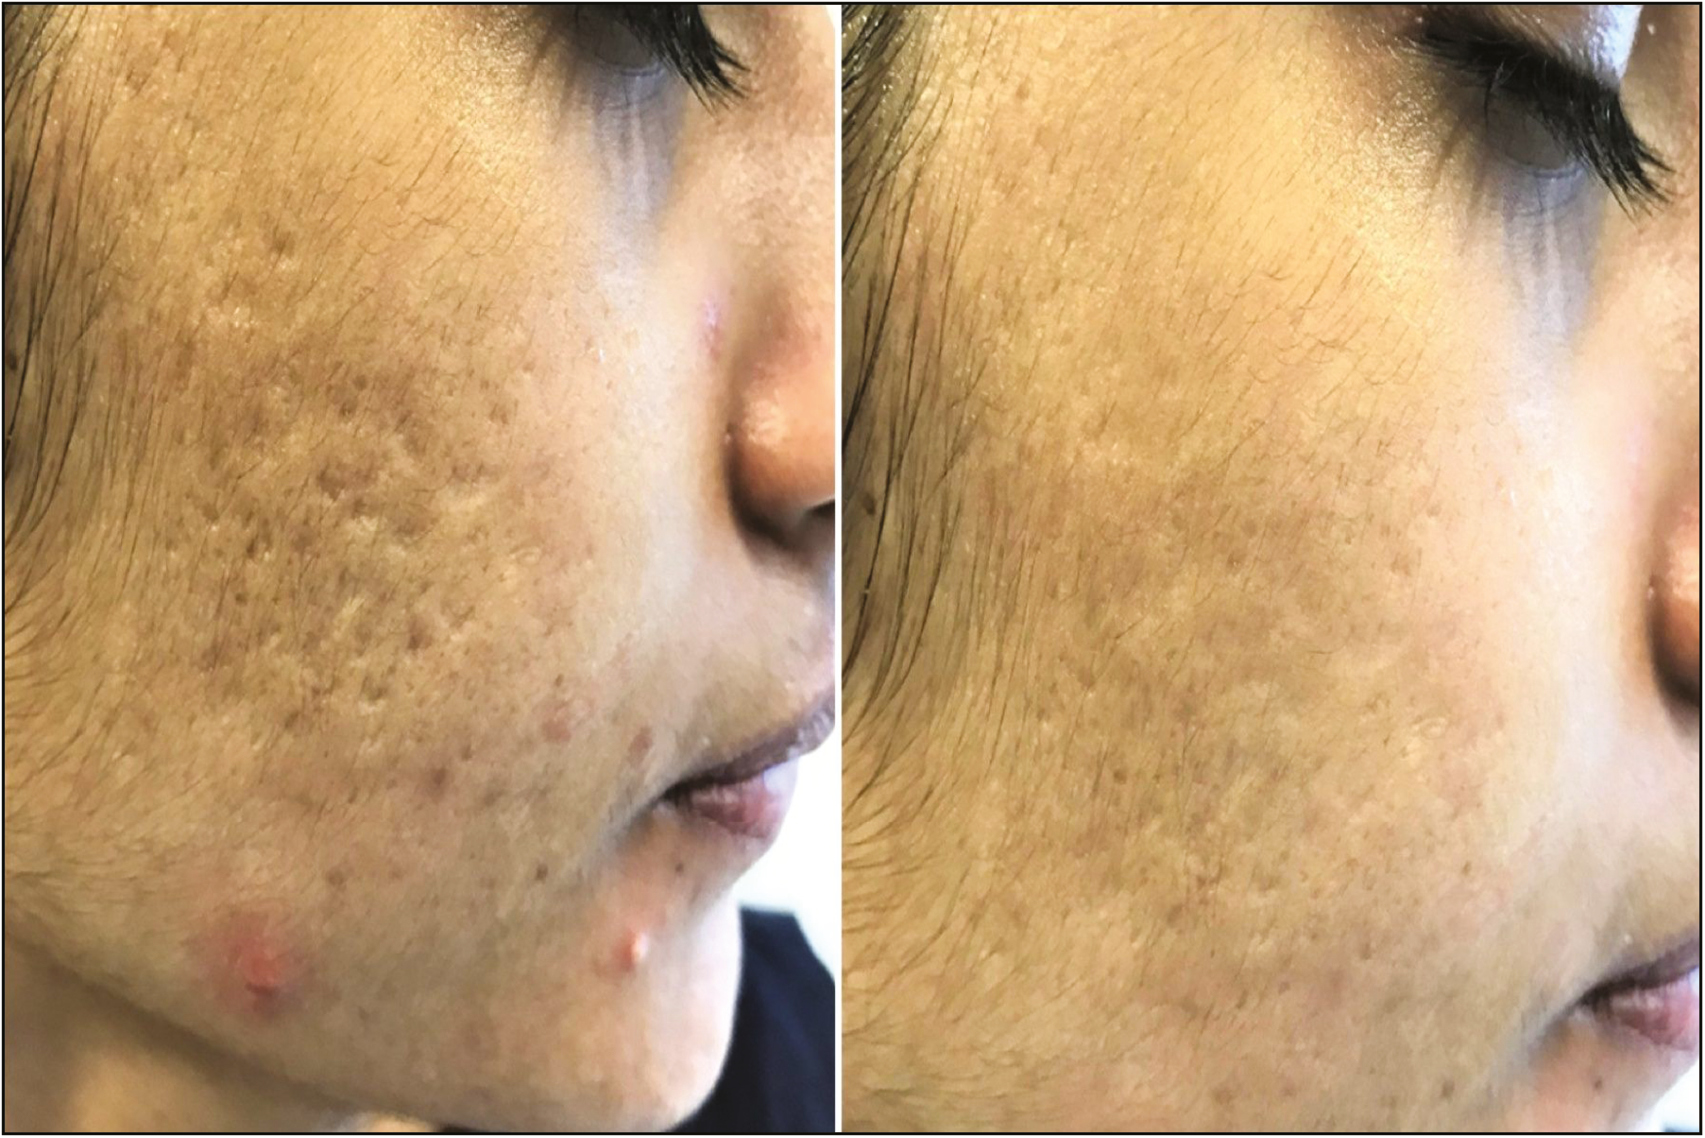 Evidence Based Surgical Management Of Post Acne Scarring In Skin Of Color Gupta A Kaur M Patra S Khunger N Gupta S J Cutan Aesthet Surg